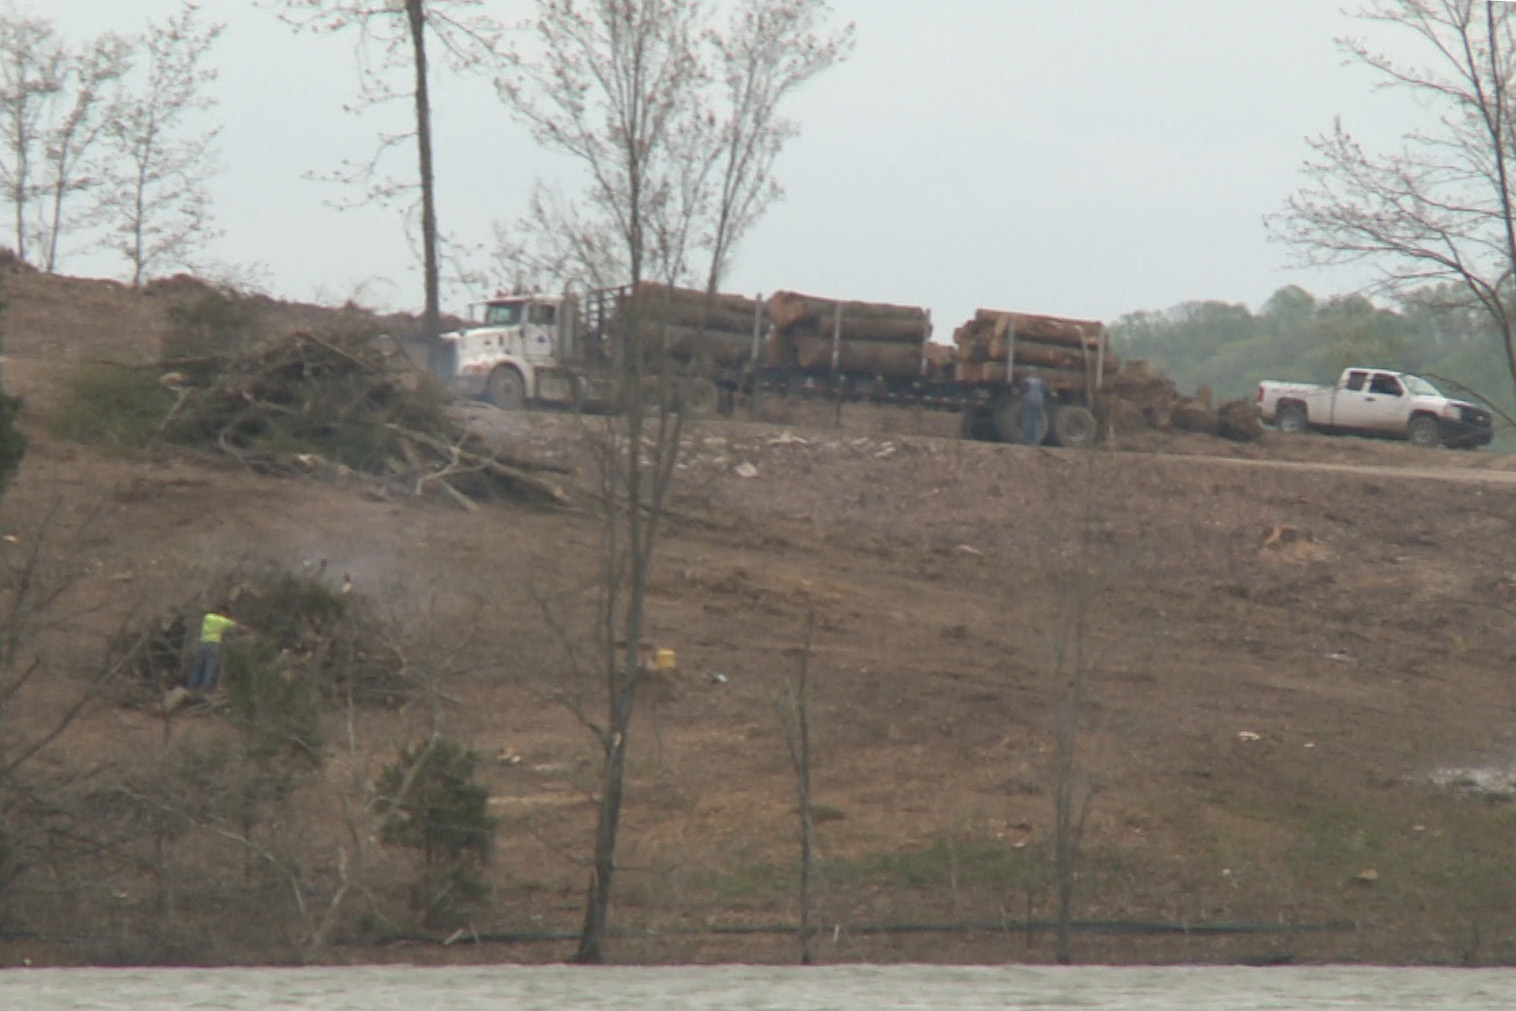 Logging trucks at Huff property